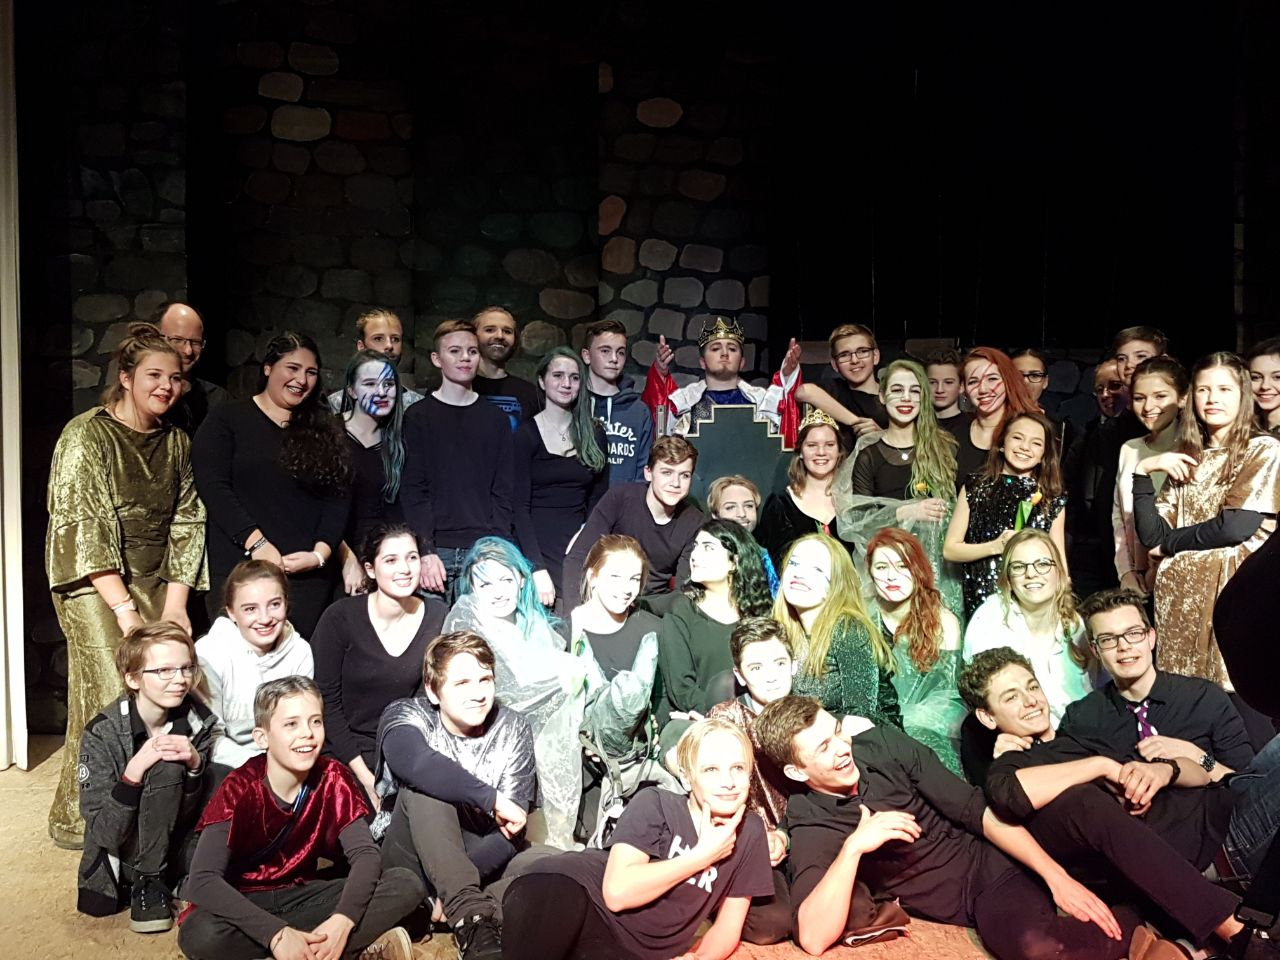 EDG_2018_Macbeth_Bild2